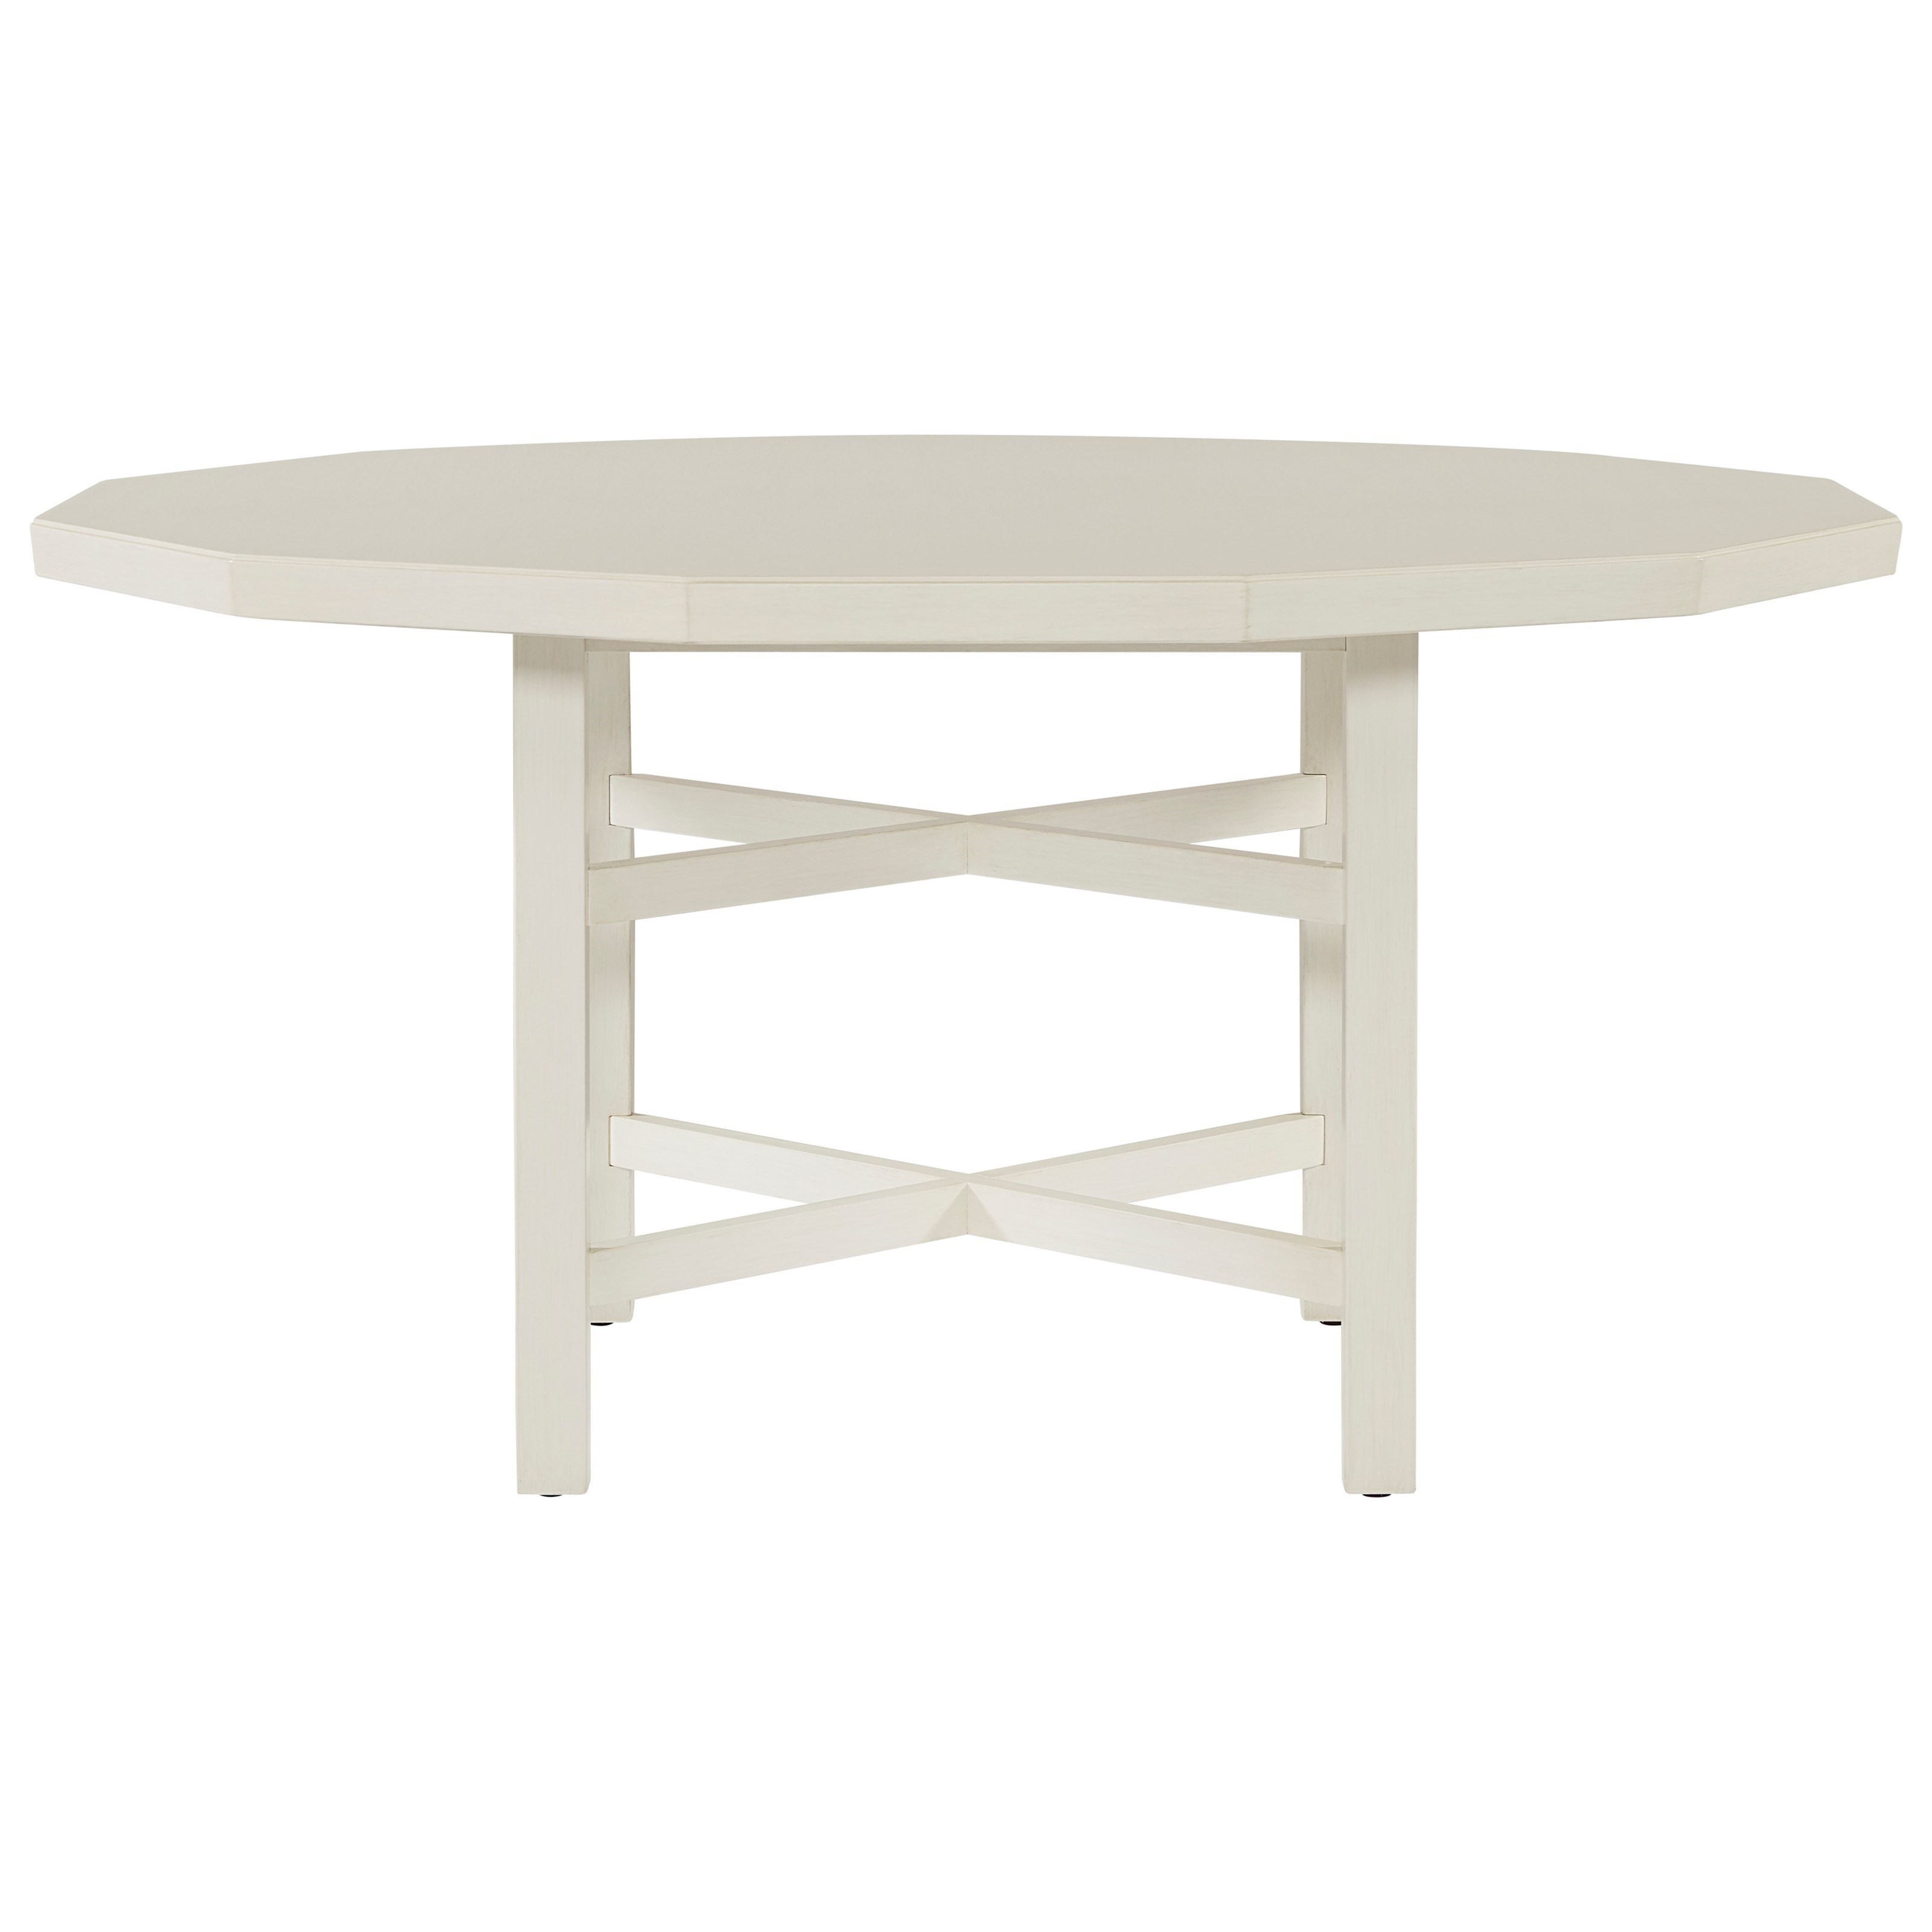 Coastal Living Home - Getaway Dining Table by Universal at Baer's Furniture